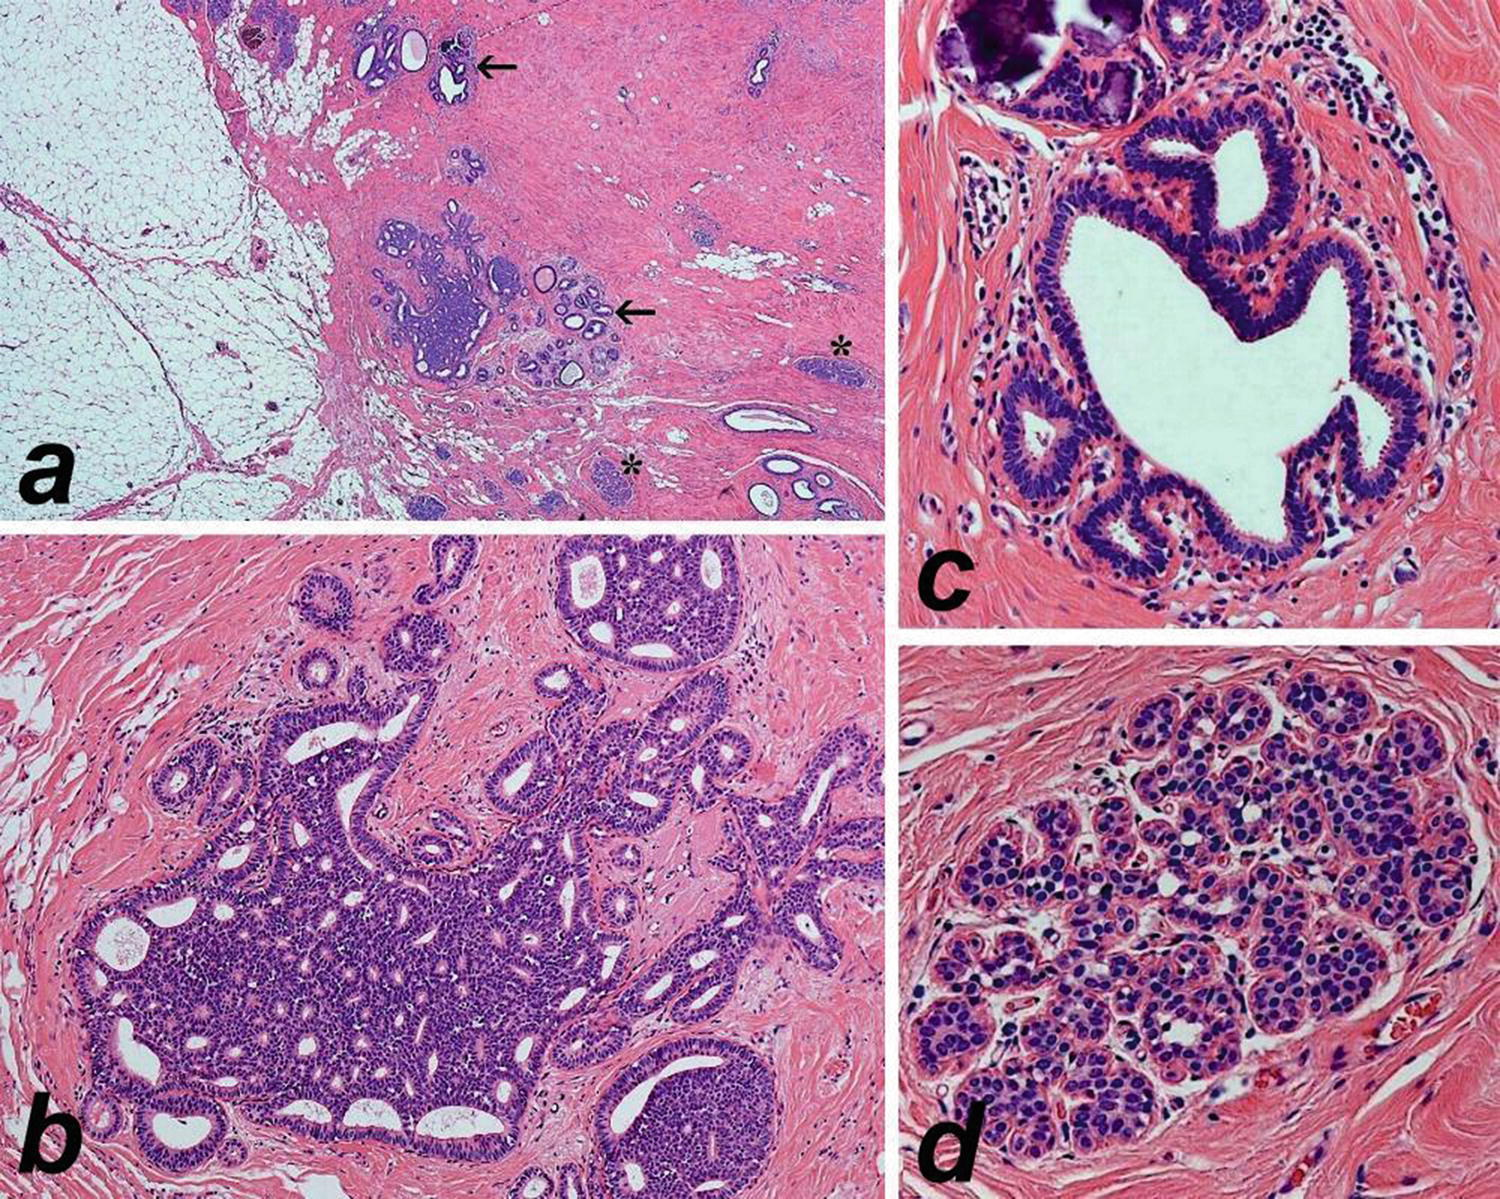 Papilloma atypical ductal hyperplasia